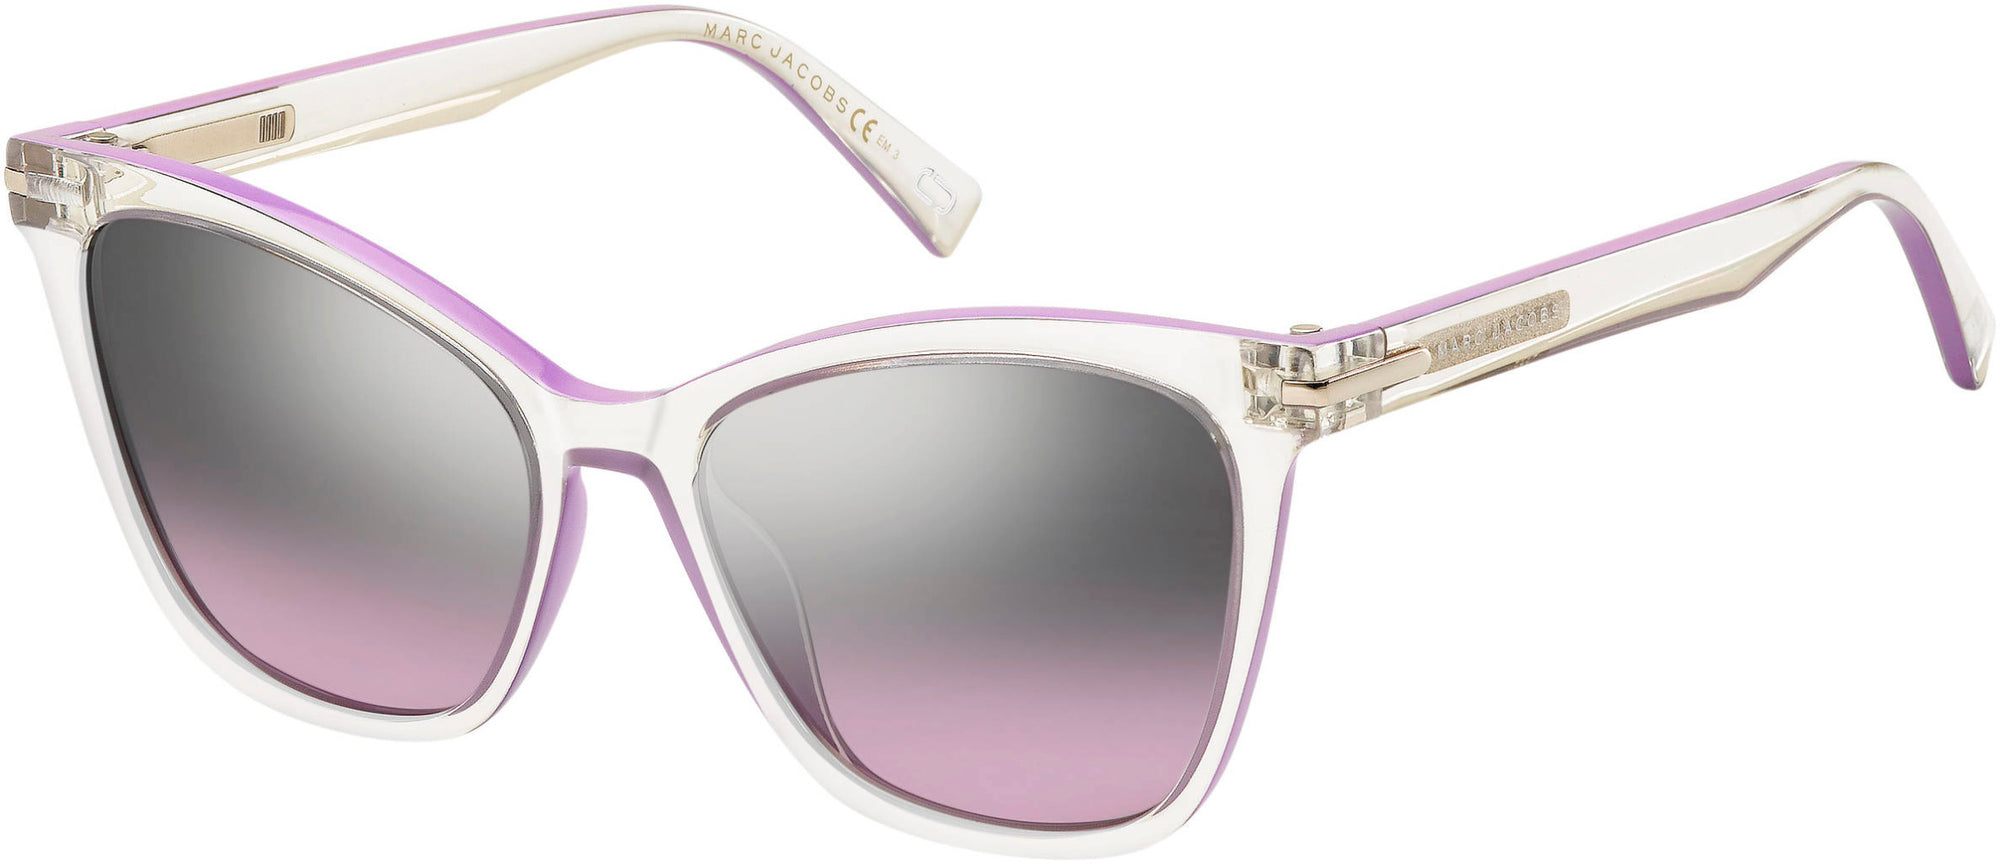 Marc Jacobs Marc 223/S Cat Eye/butterfly Sunglasses 0141-0141  Crystal Rubpu (SC Gray/Silver Mirror)